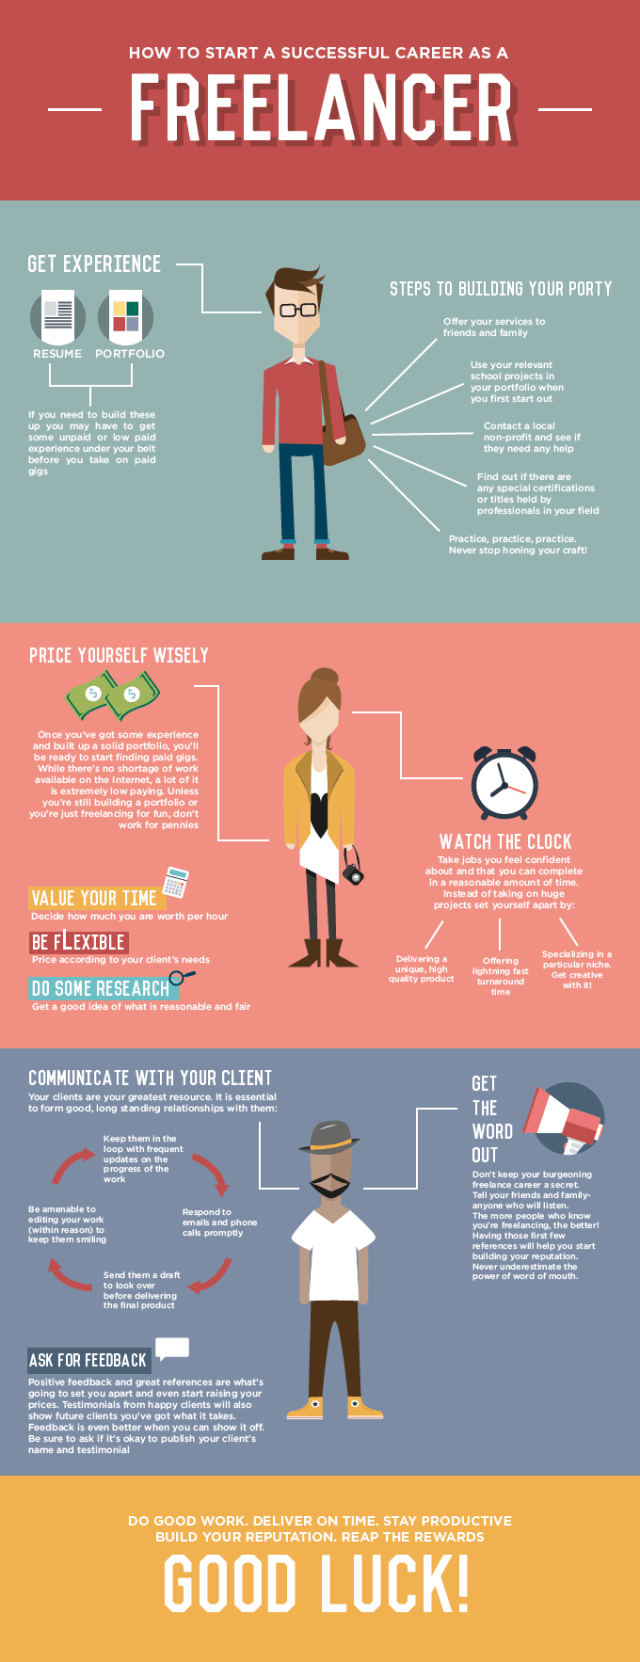 How-to-start-a-successful-career-as-a-freelancer-infographic